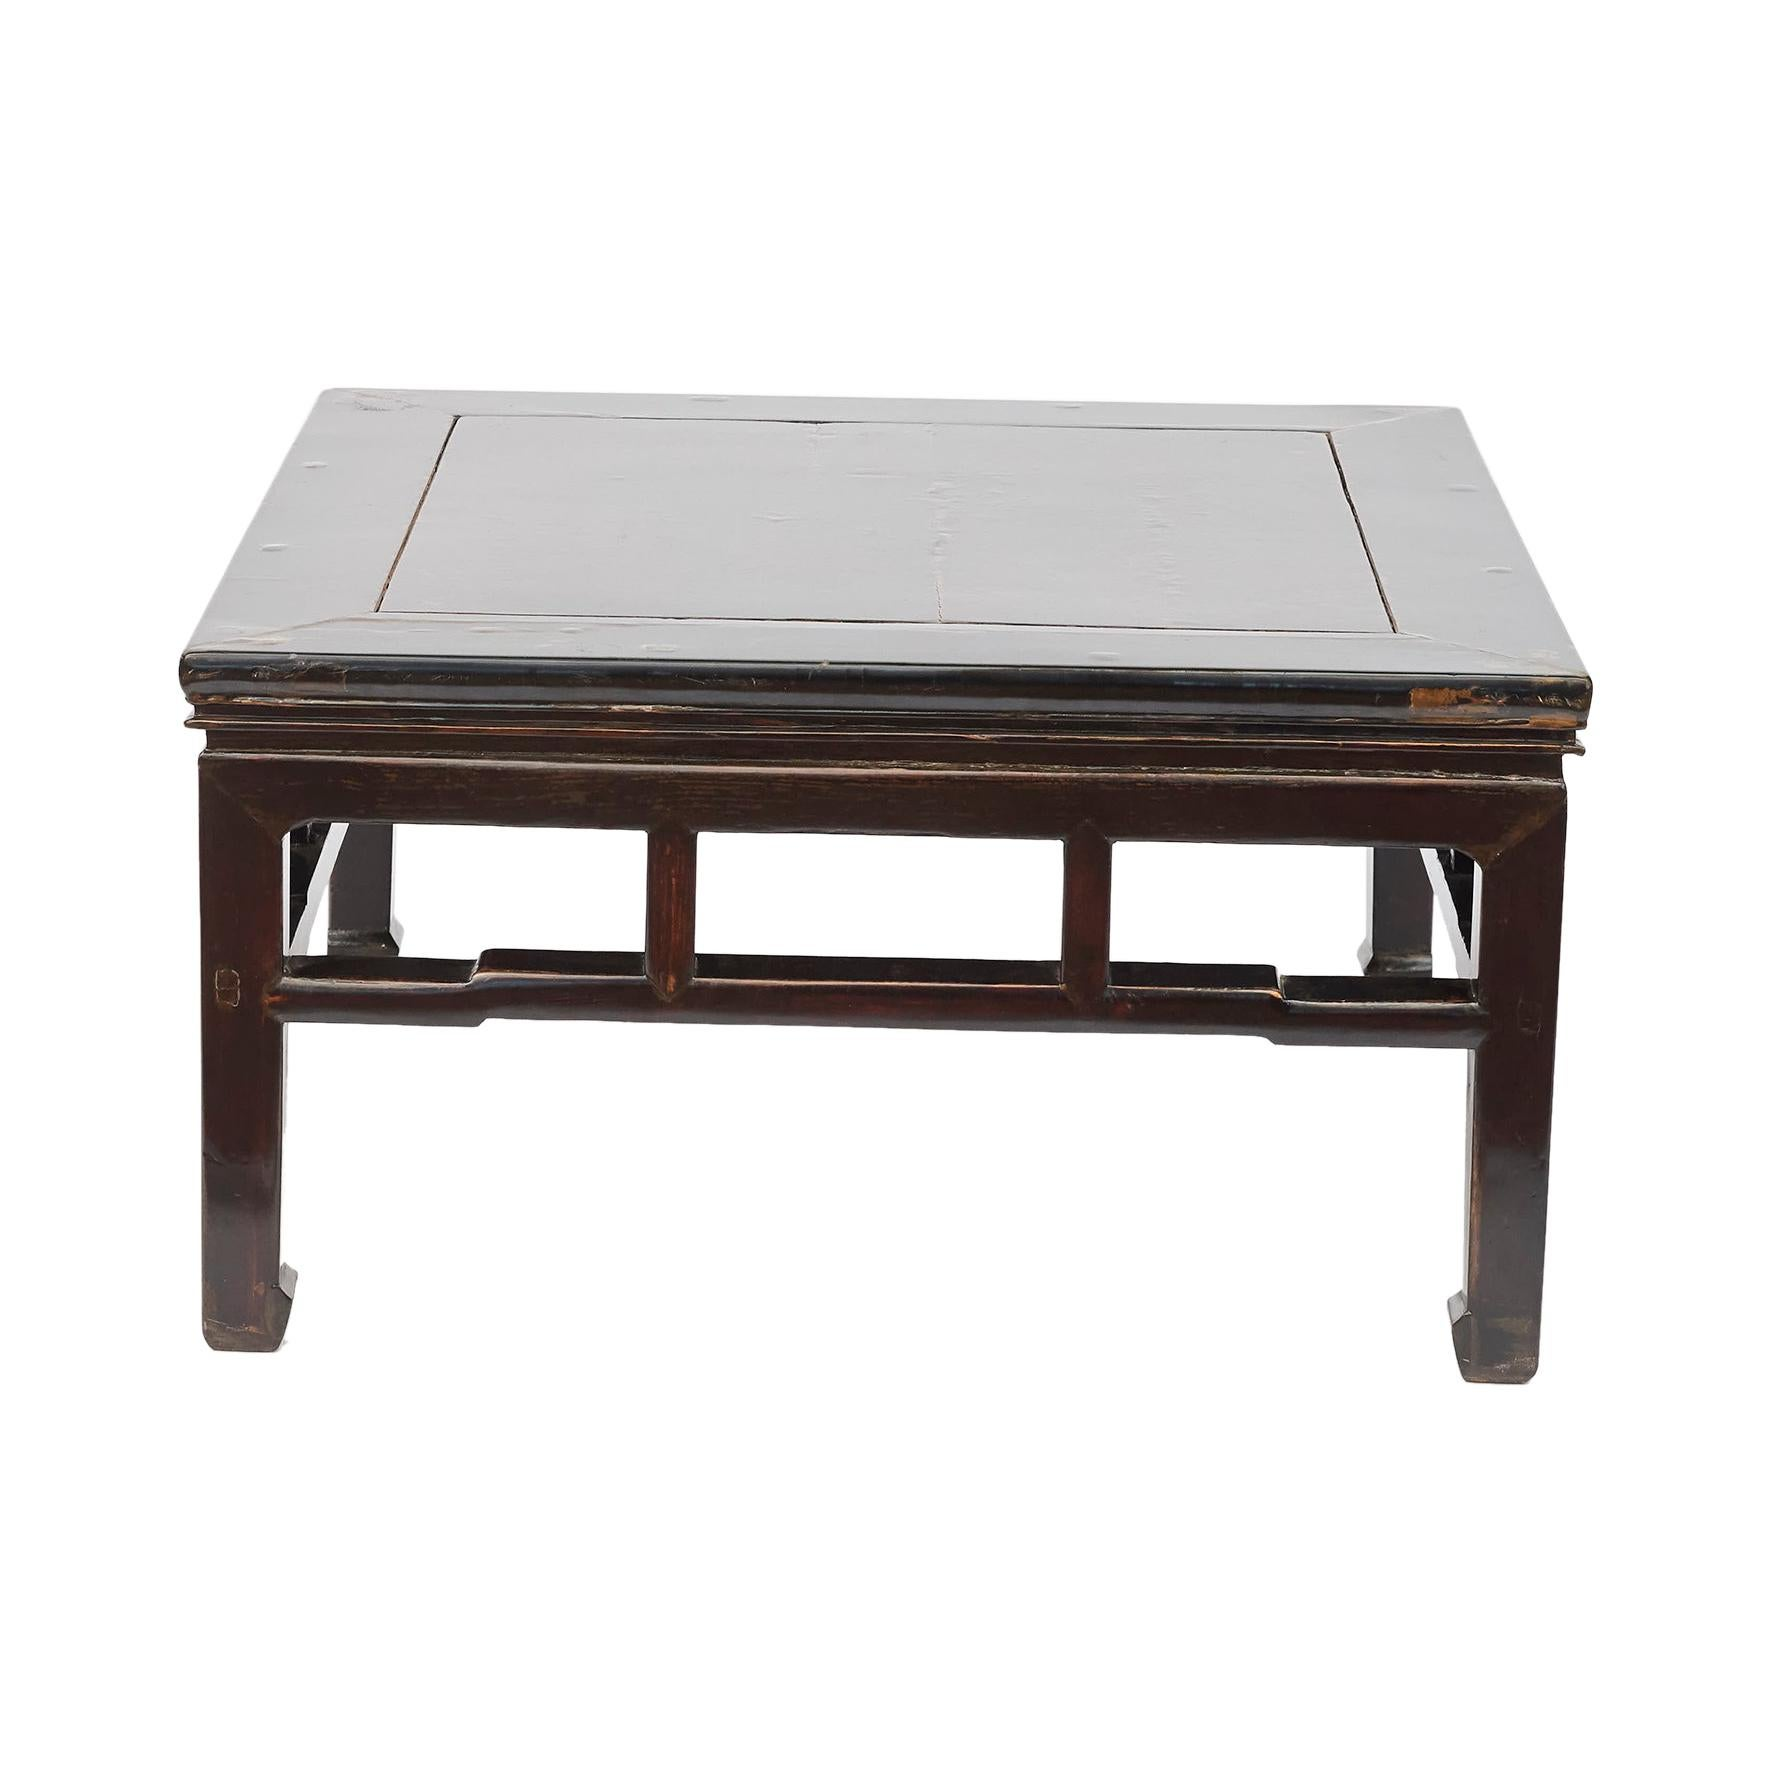 19th Century Chinese Ming Style Coffee Table with Original Lacquer